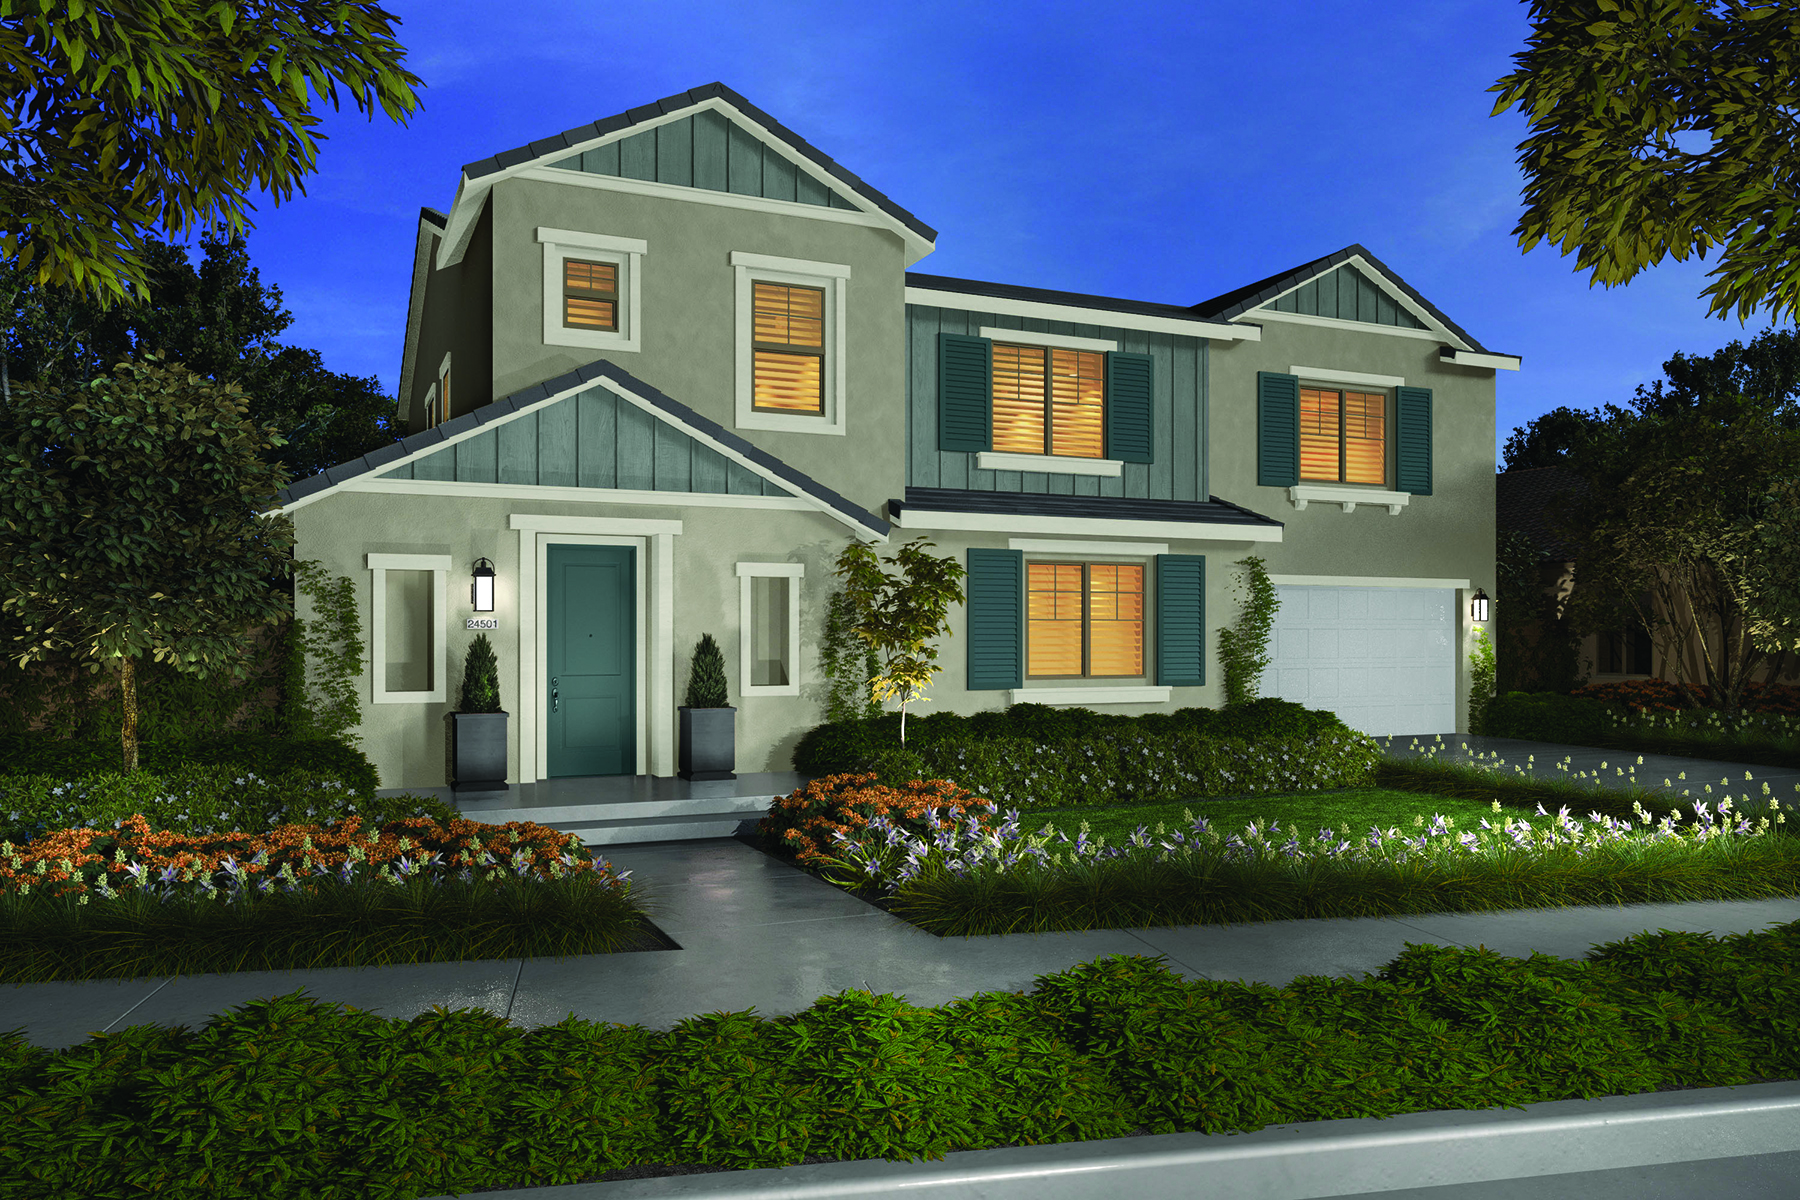 Introducing Savannah, A Modern Collection Of Fresh New Homes In Menifee  With Designs That Offer The Perfect Balance Of Indoor/outdoor Living Spaces.